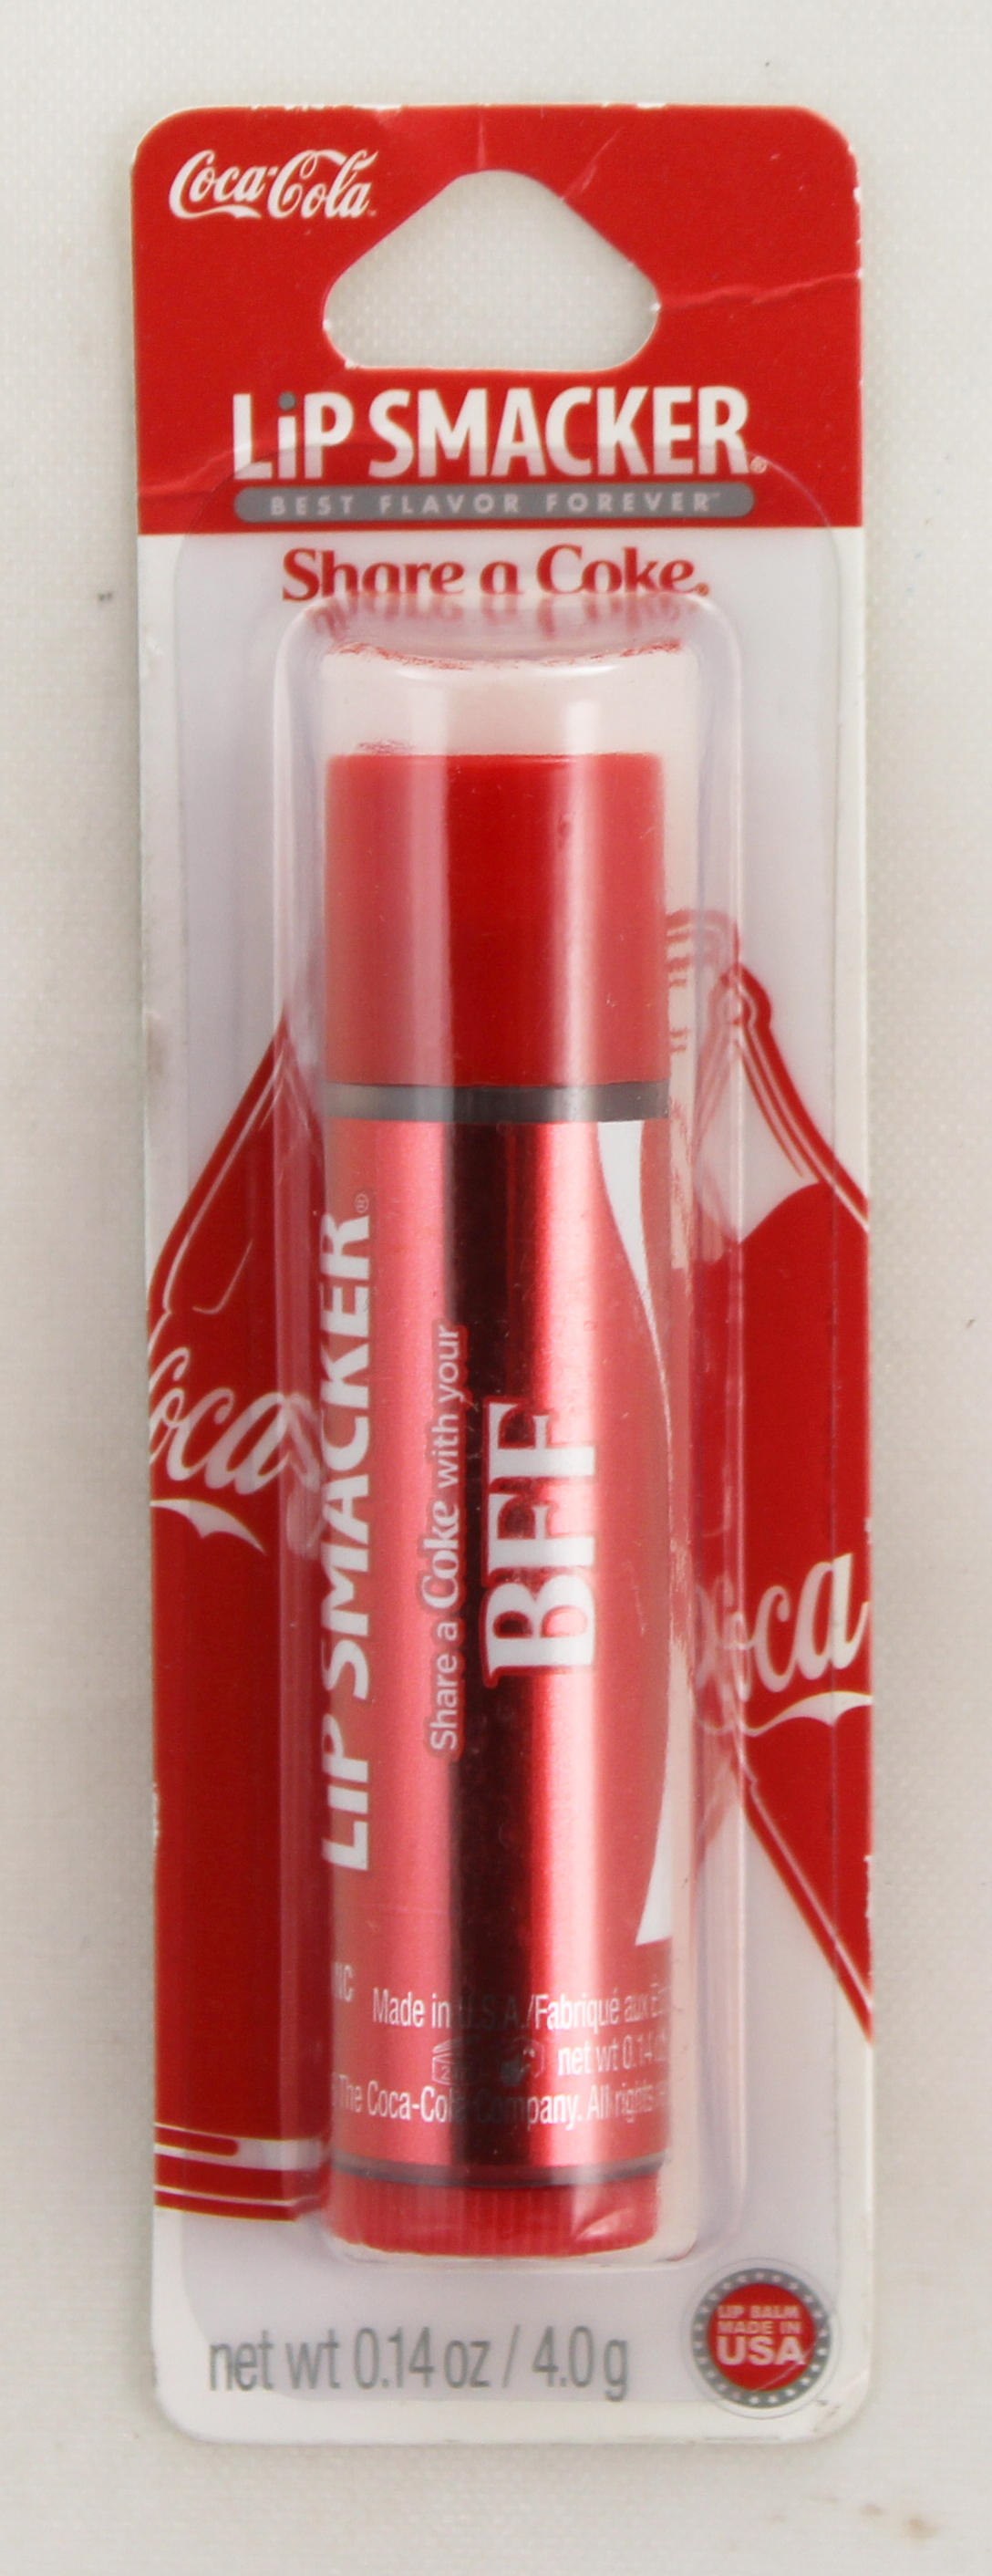 Lip Smackers By Bonne Bell Classic Coke Flavored Lip Balm/Chap Stick. Carded/ Case Pack only